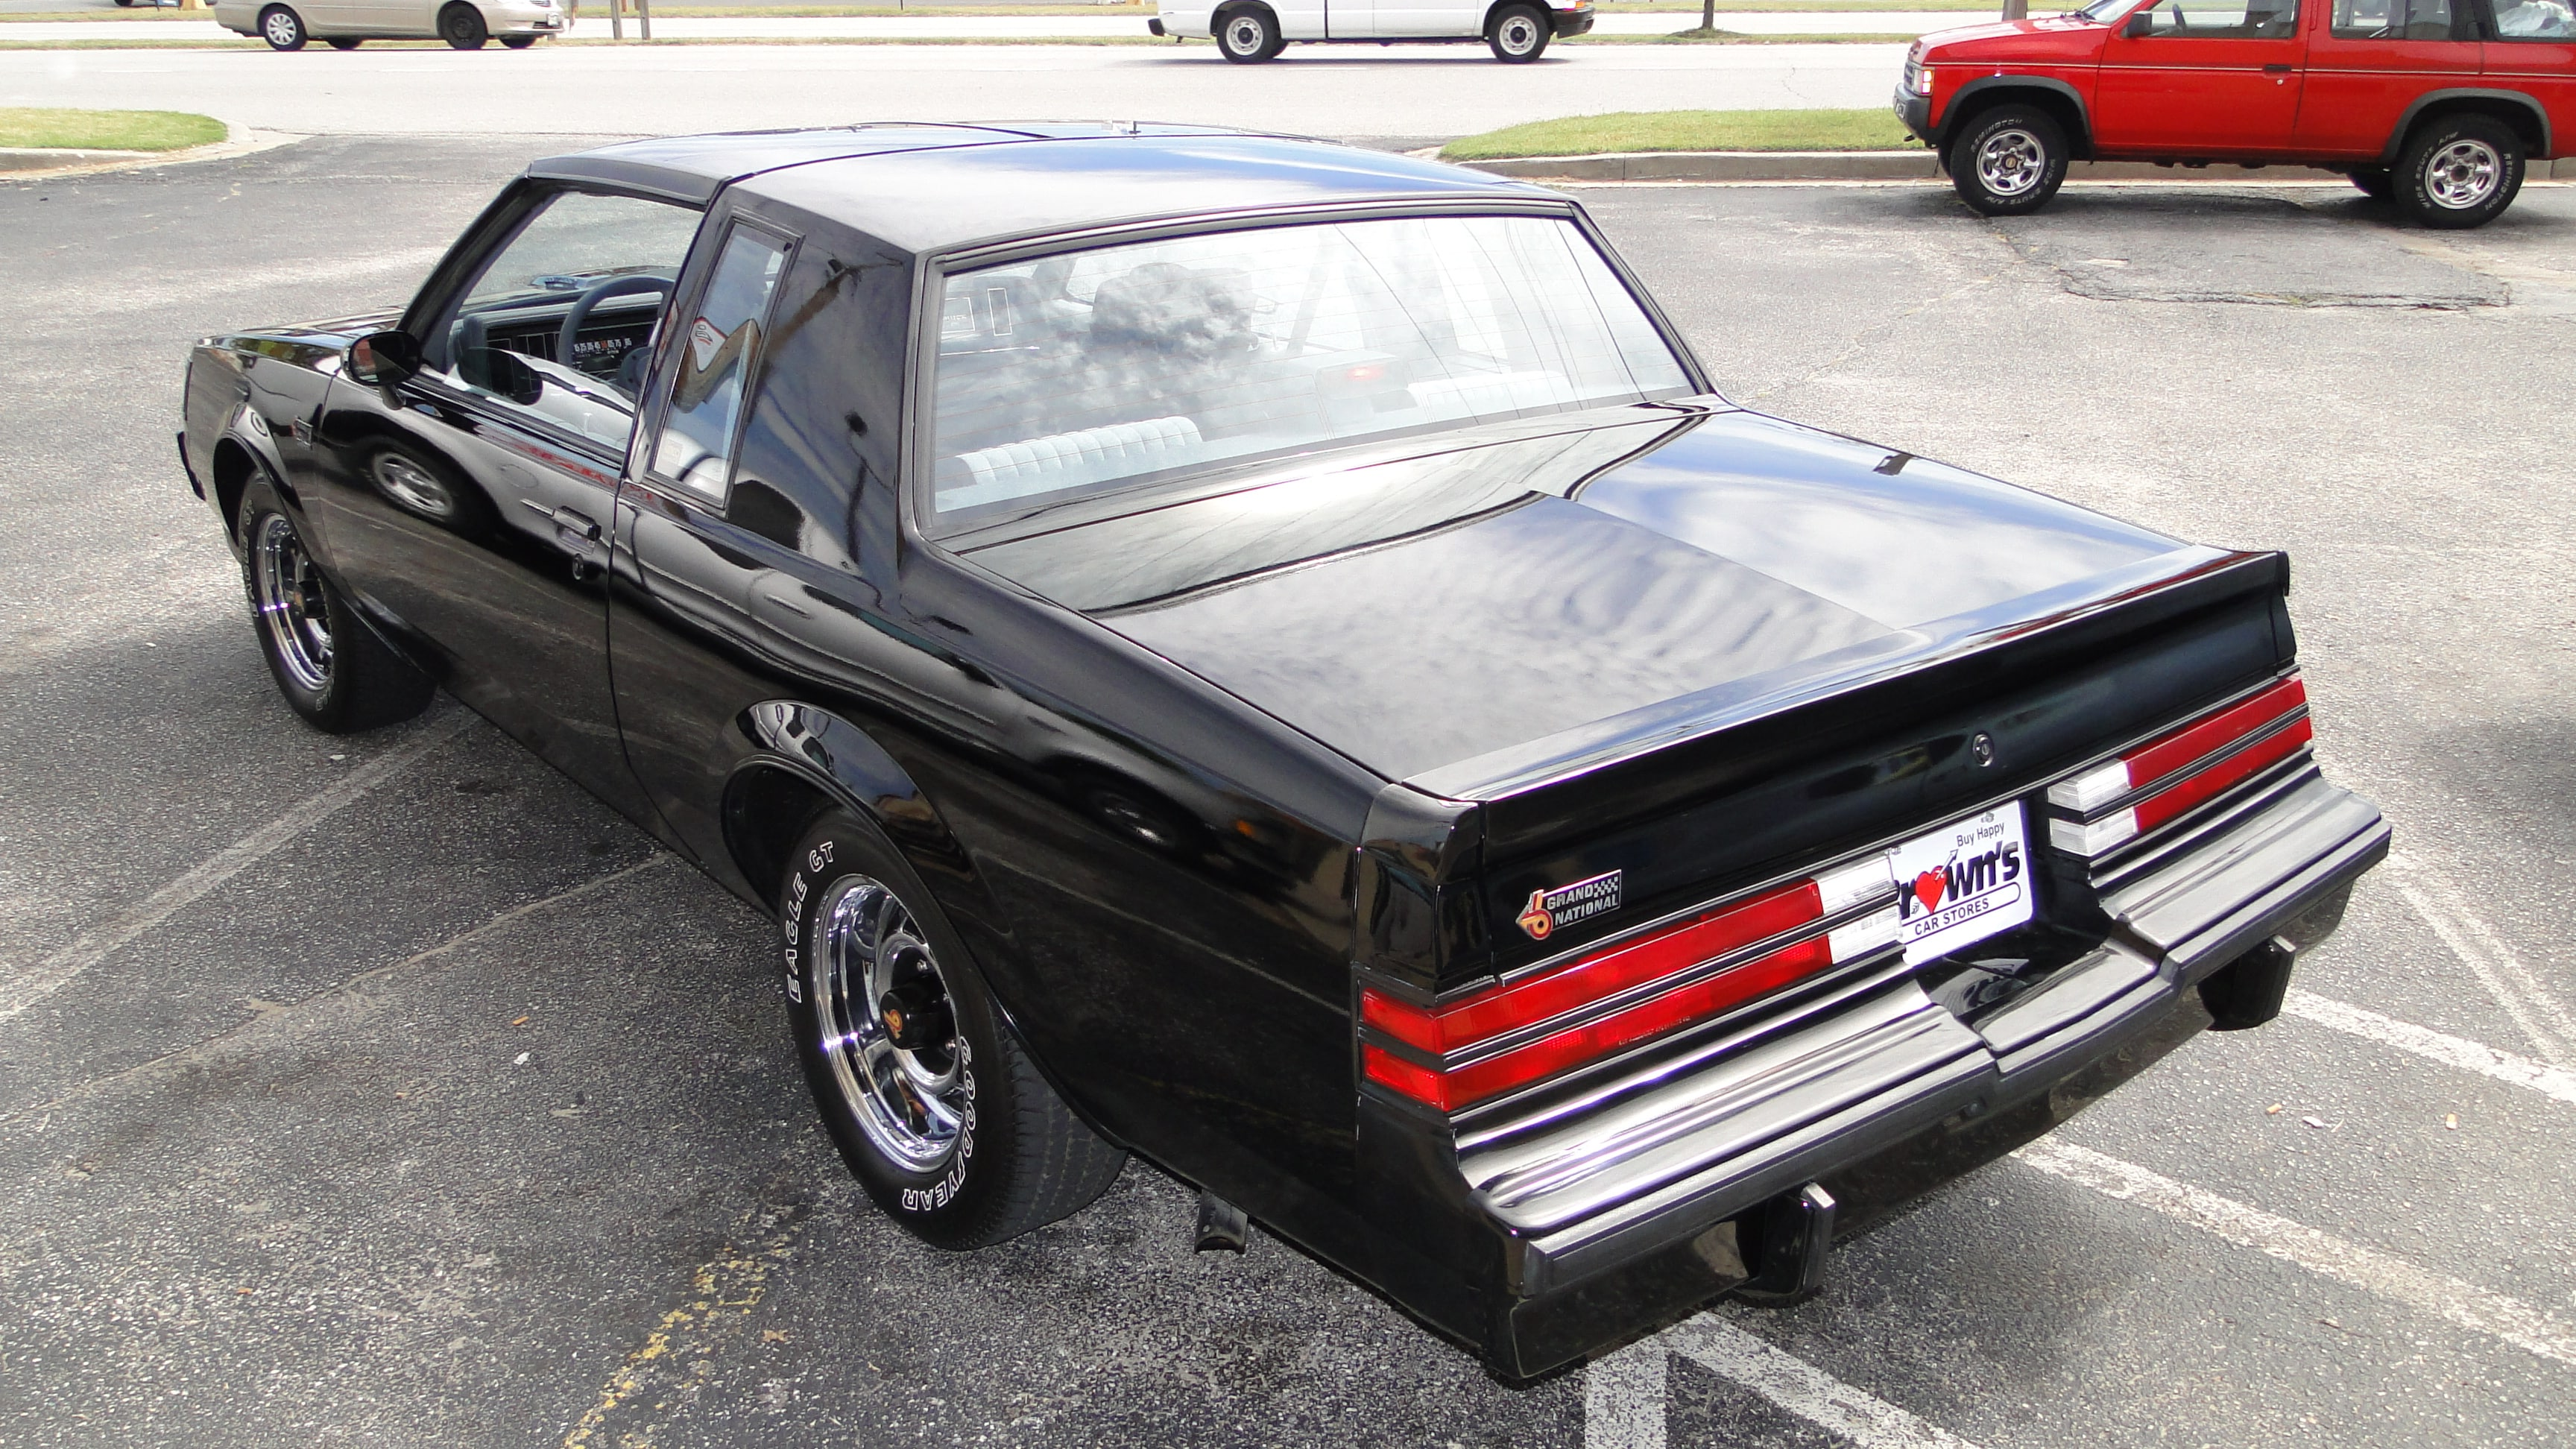 used 1987 buick grand national for sale glen burnie md. Cars Review. Best American Auto & Cars Review